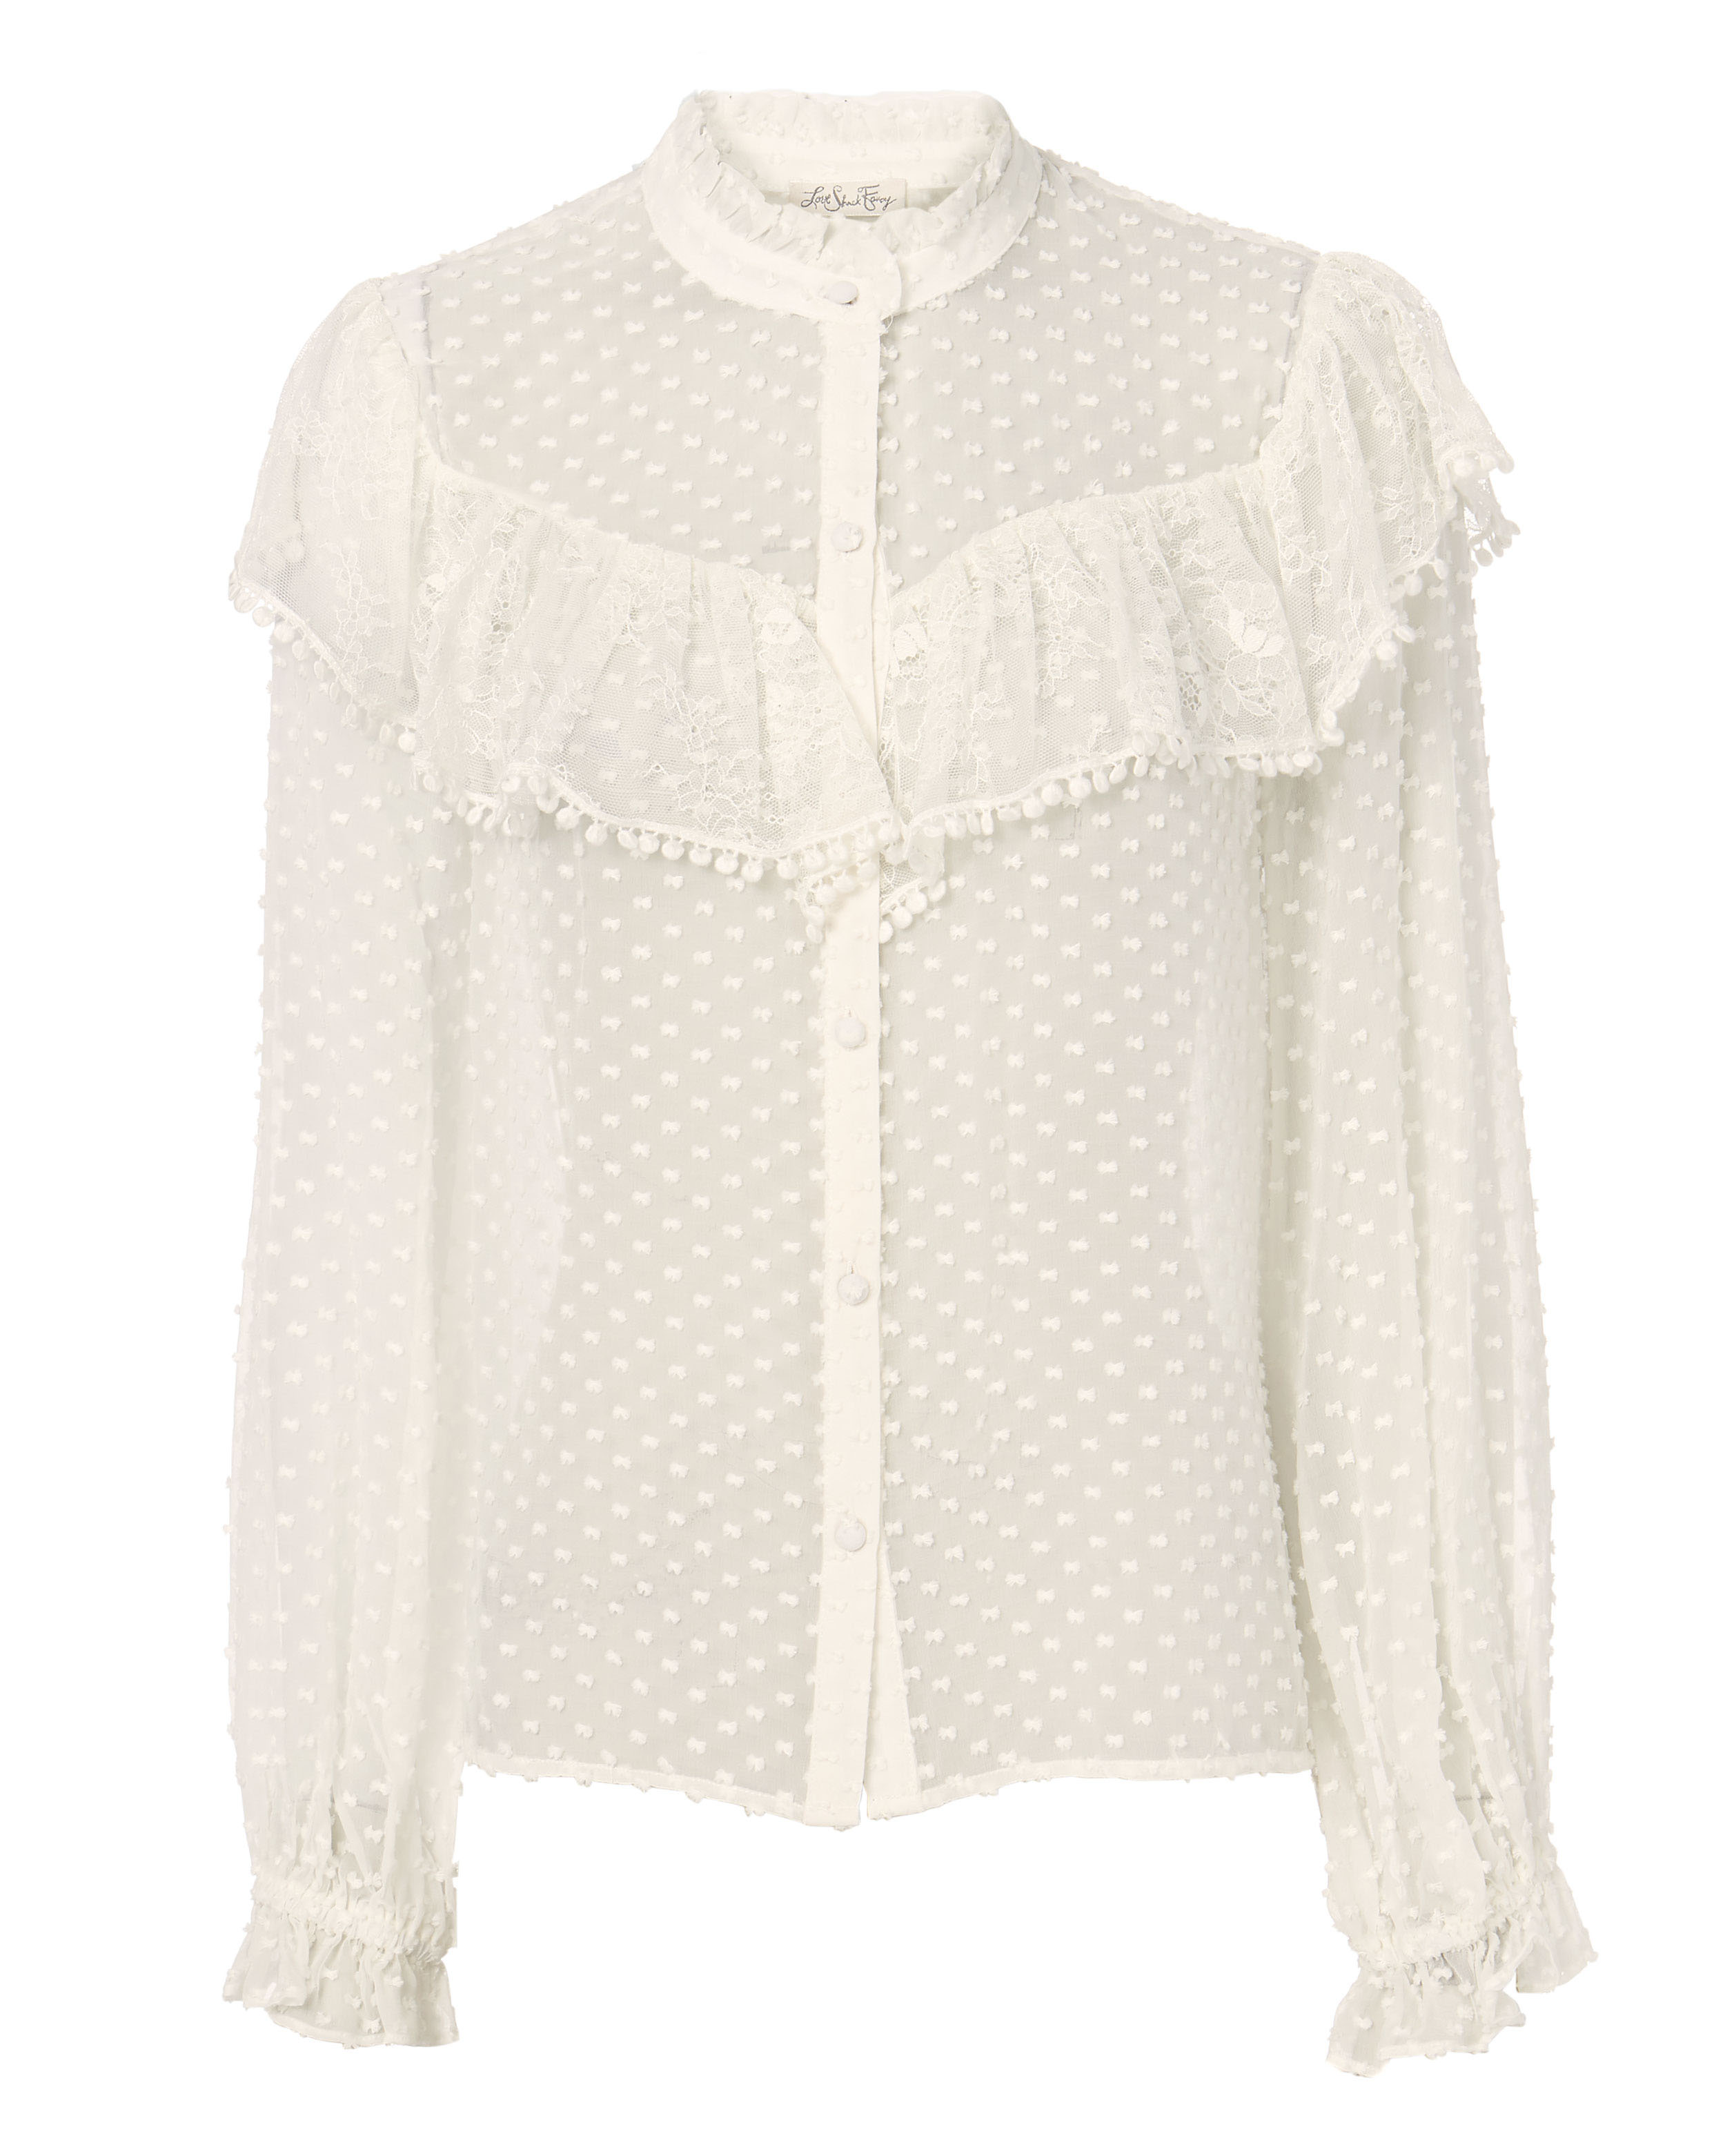 LOVE SHACK FANCY Erica Swiss Dot Blouse